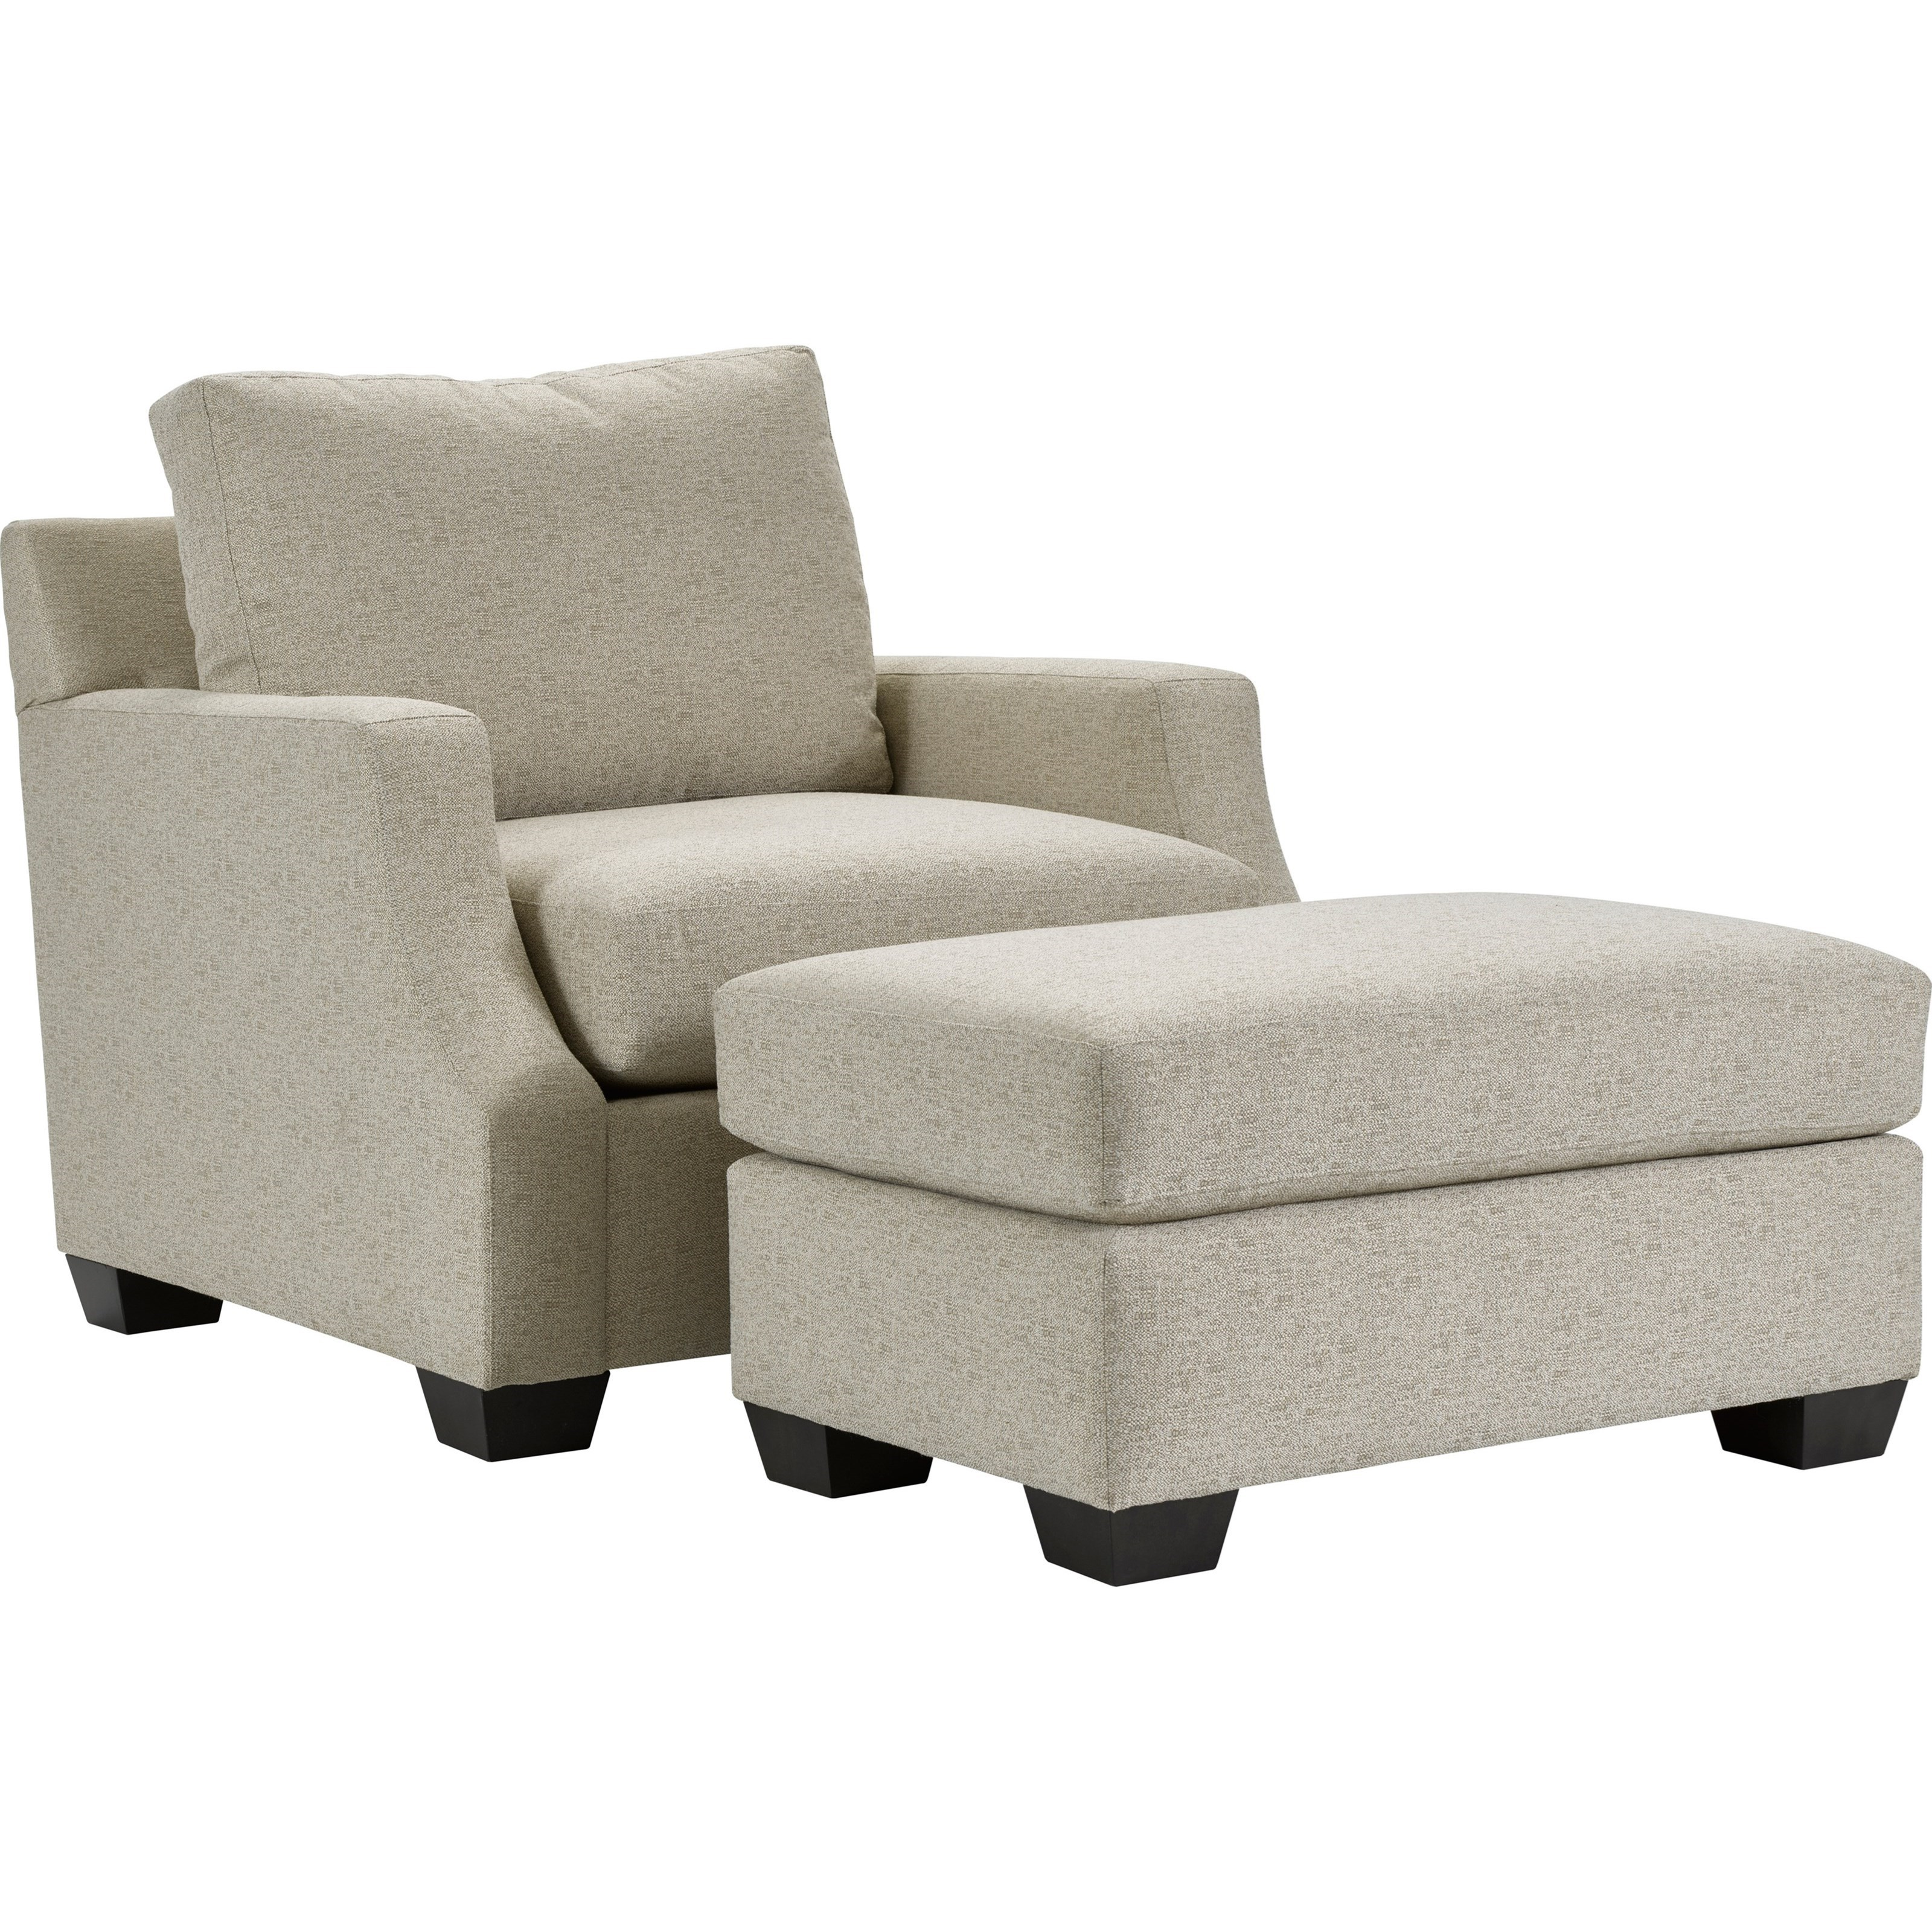 Delicieux Broyhill Furniture Chambers Chair And Ottoman   Item Number: 4212 000+500